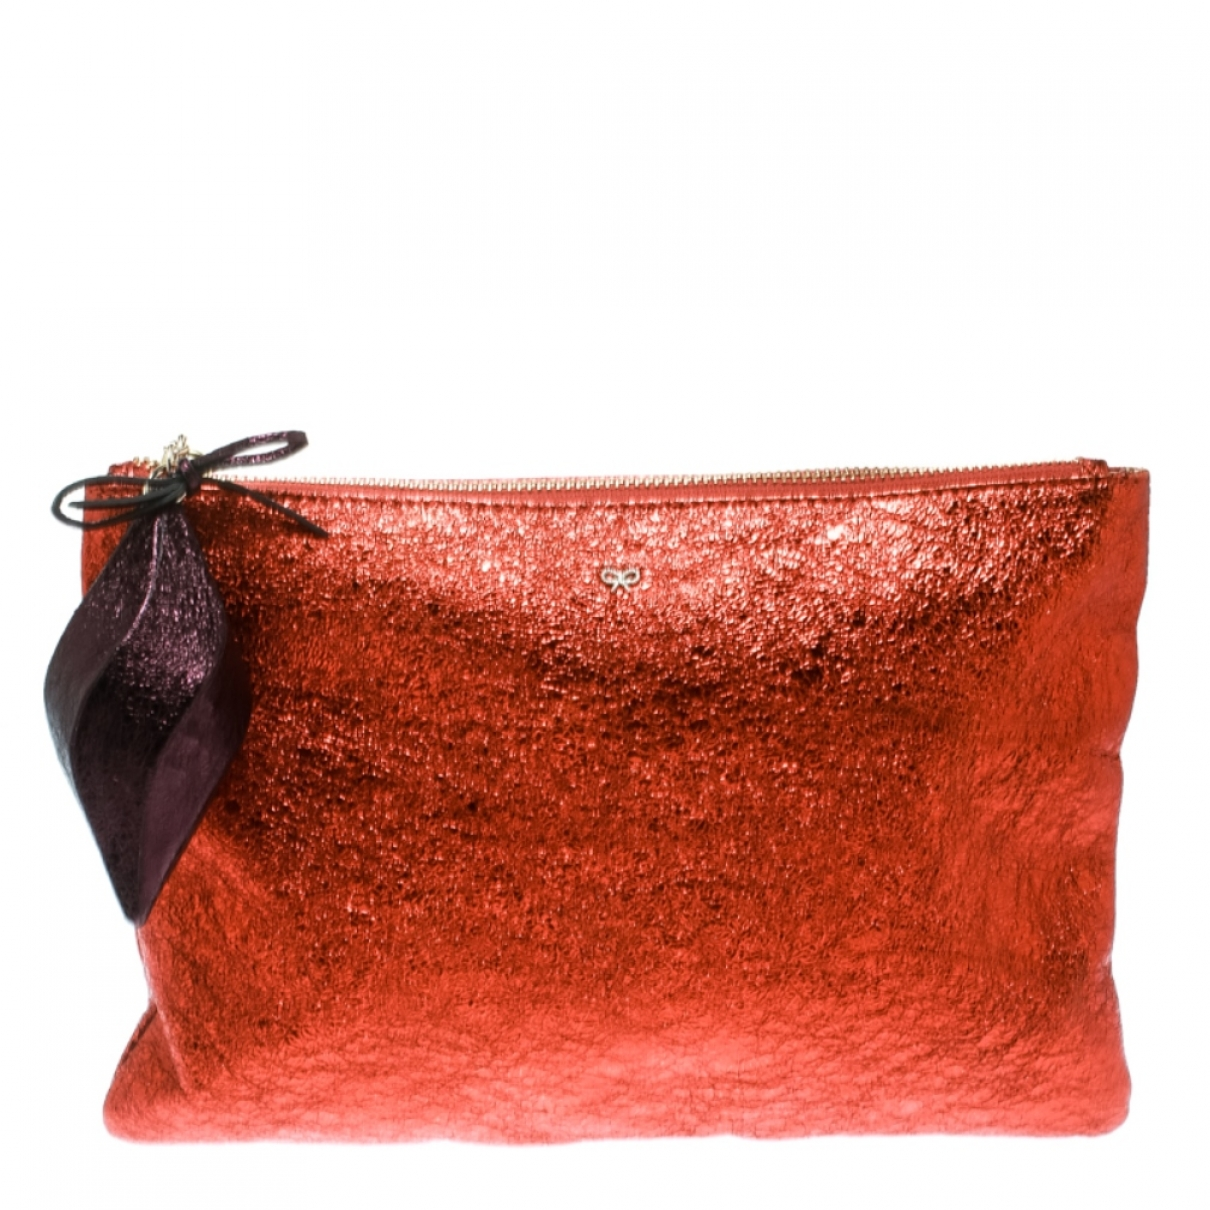 Anya Hindmarch \N Metallic Cloth Clutch bag for Women \N